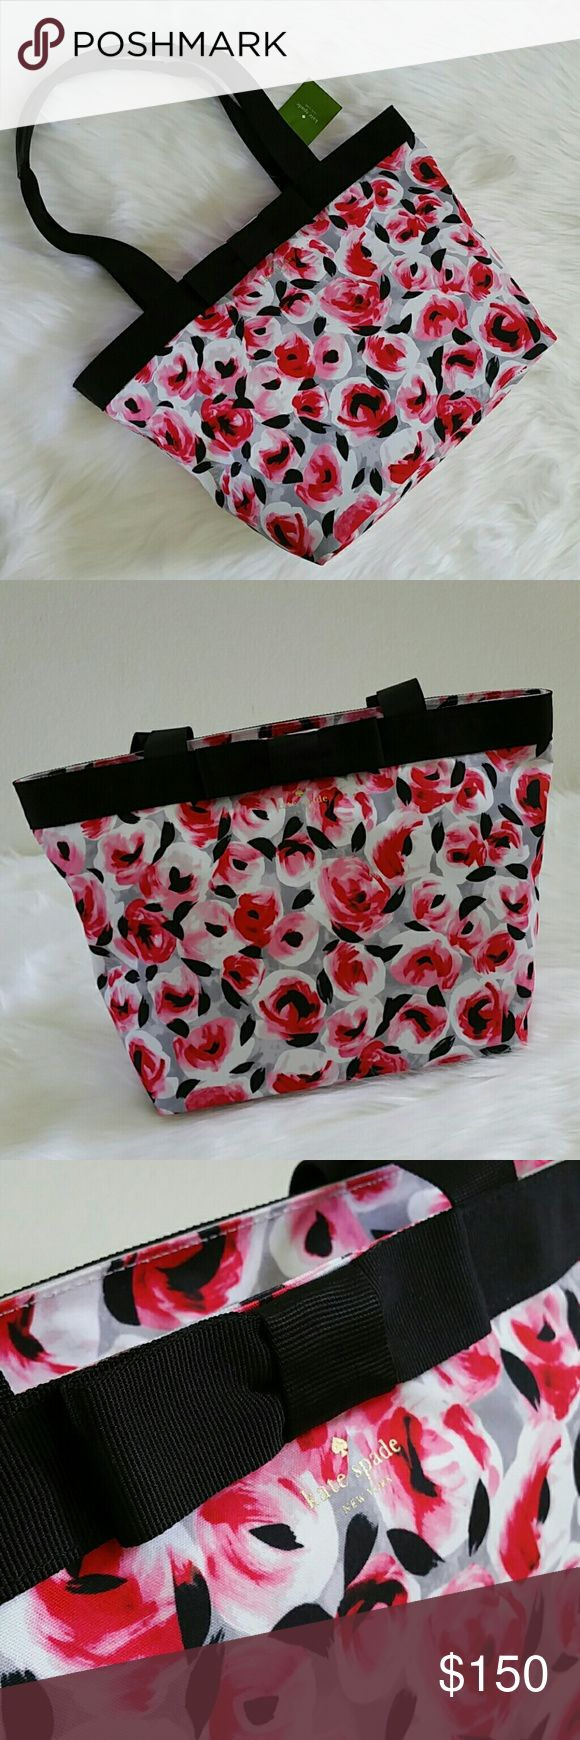 ♠SALE♠️kate spade chester lane dorothy tote kate spade chester lane dorothy tote Posy red multi rose patterned fabric tote with zippered top closure Grosgrain ribbon and bow trim and handles with saffiano leather wraps Interior in a silver treated finish with zipper and slip pockets Brand new and unused No trades Offers through Poshmark or add to bundle and ask for private offer, SALE price is firm kate spade Bags Totes